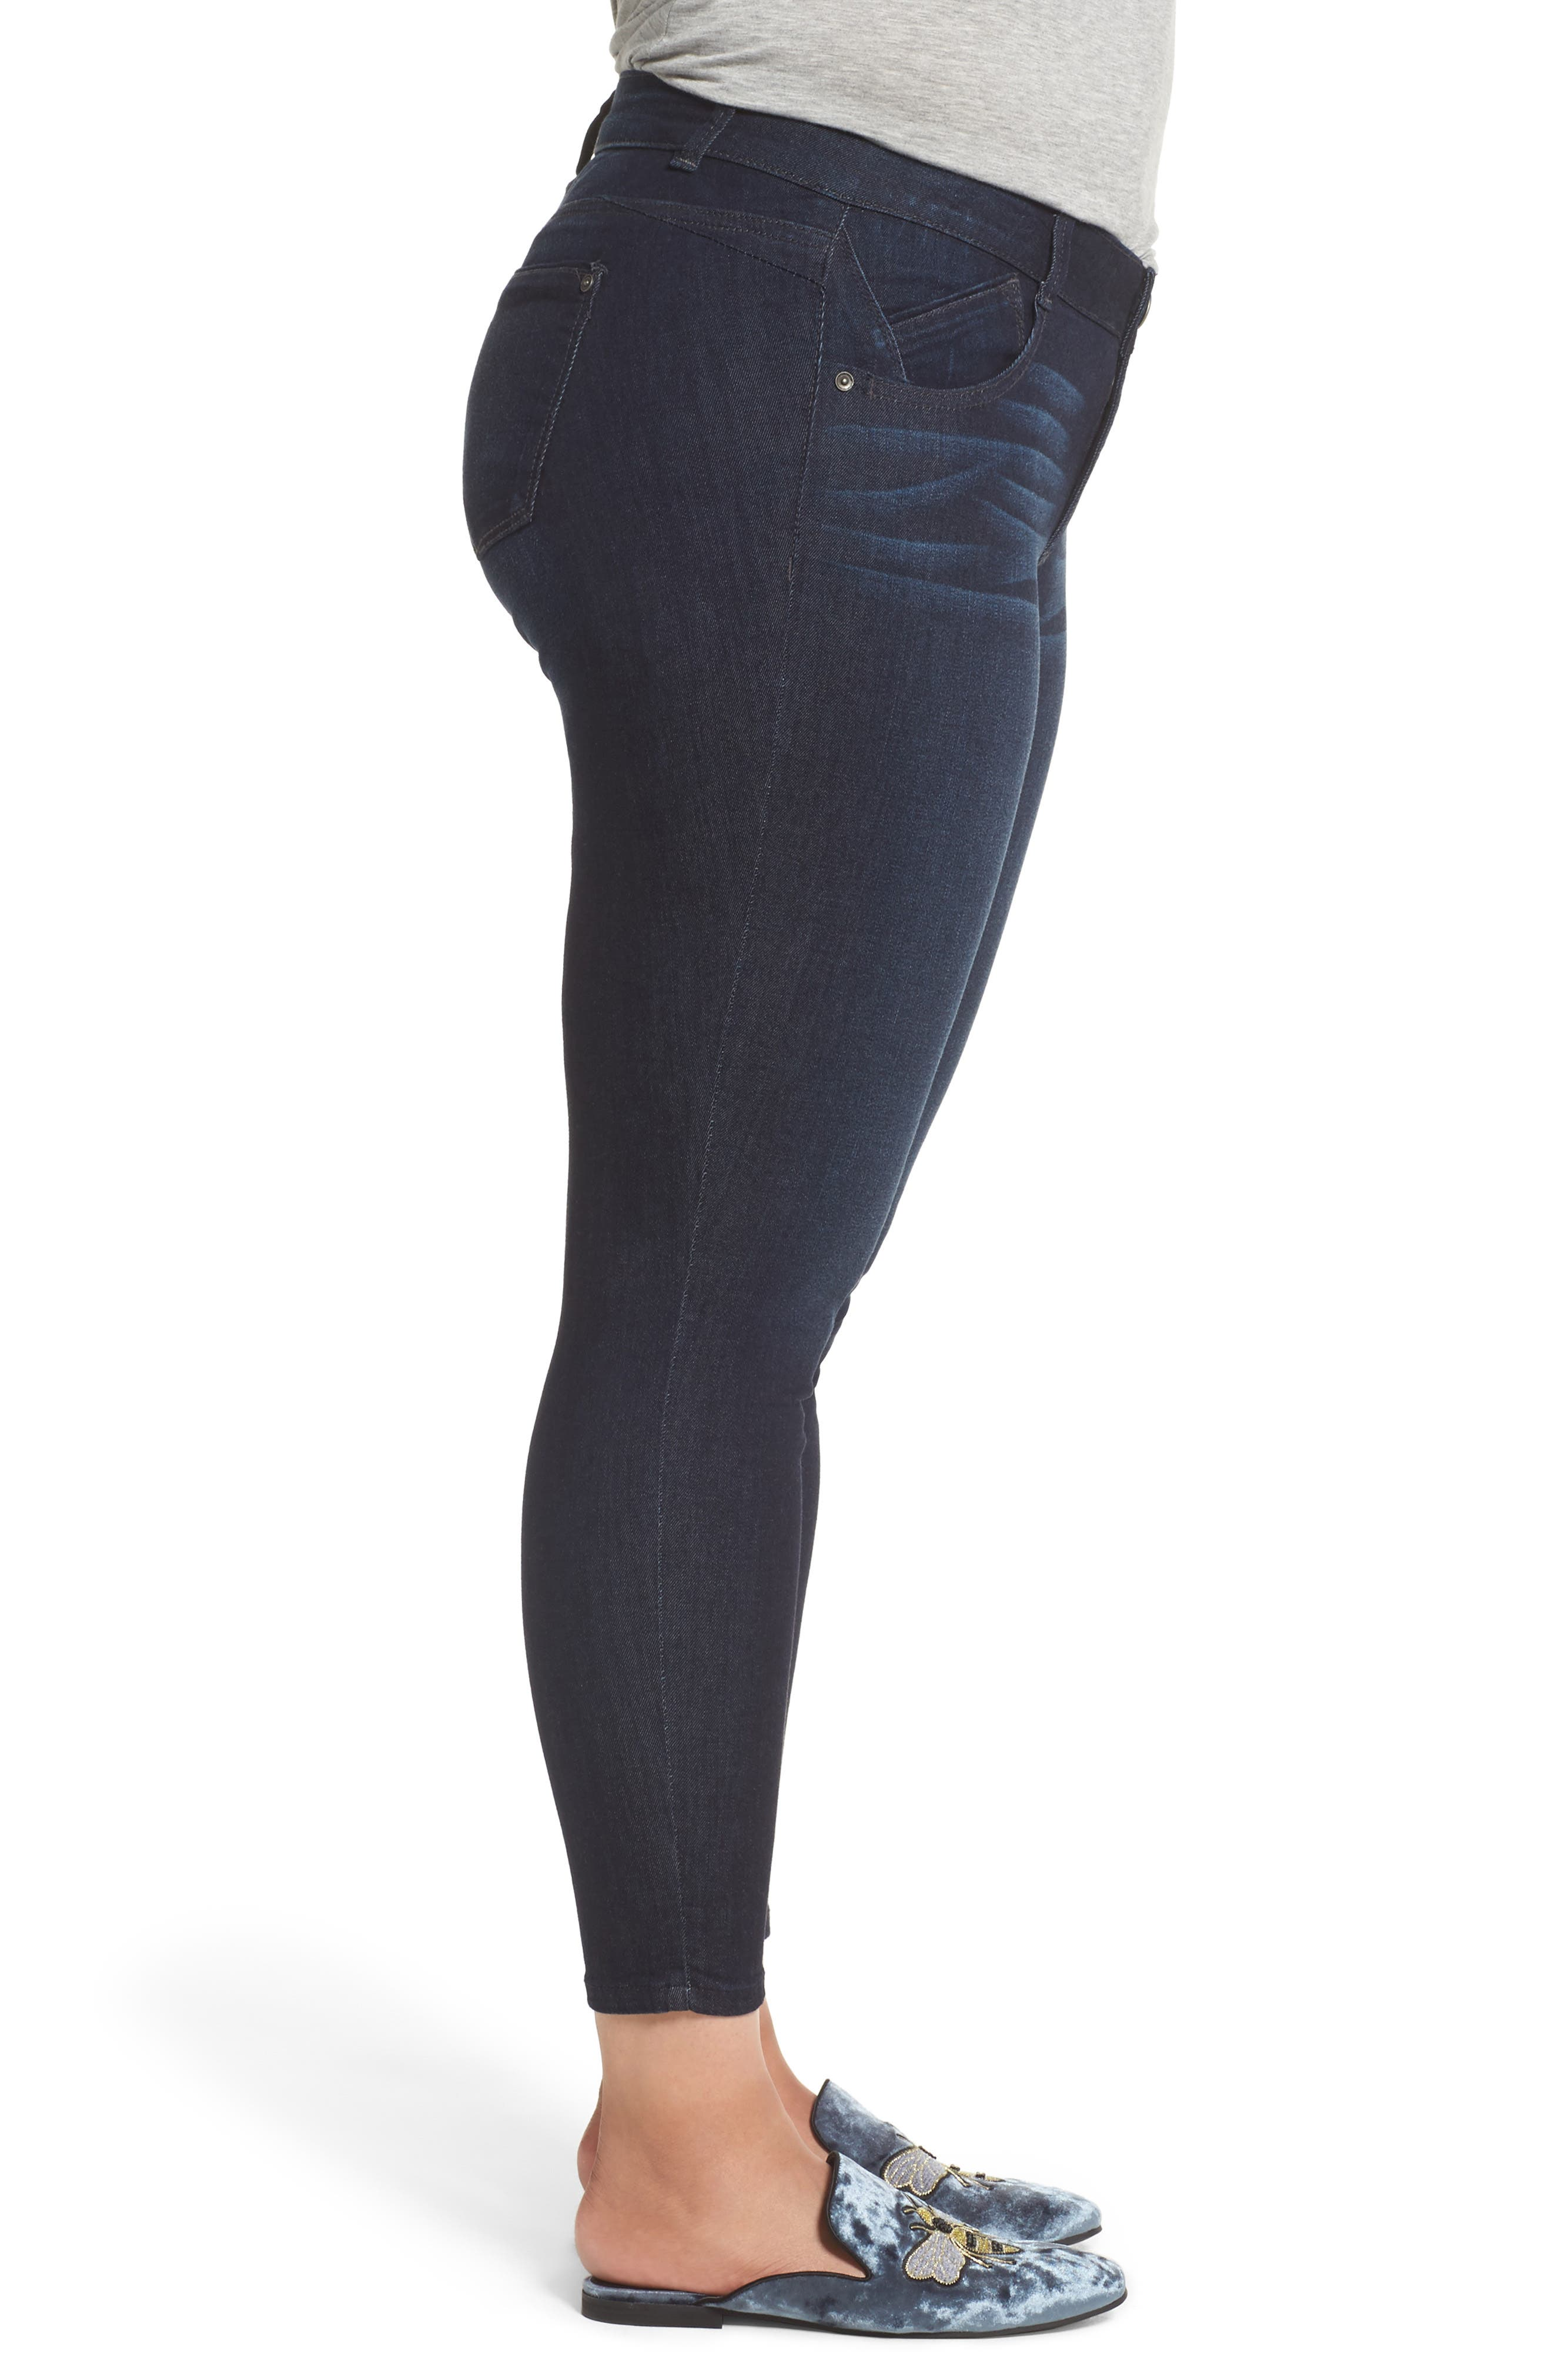 Alternate Image 3  - Wit & Wisdom Ab-solution Ankle Skimmer Jeans (Plus Size) (Nordstrom Exclusive)